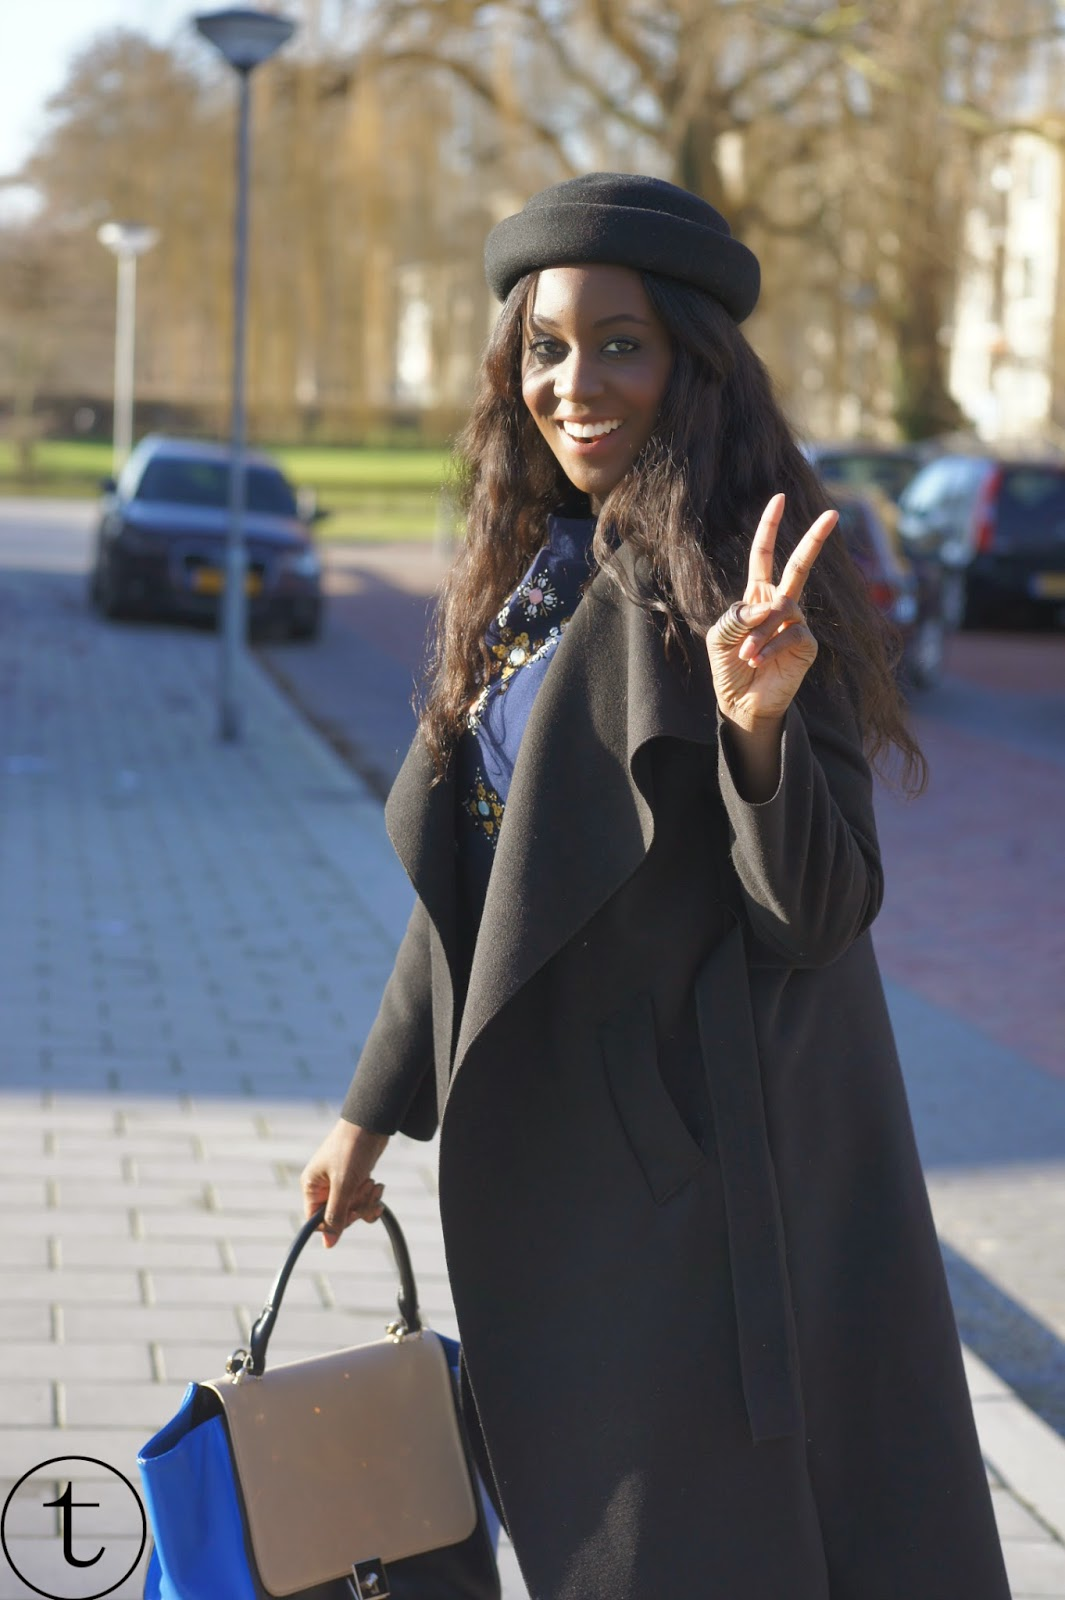 streetstyle photo wearing black coat and H&M outfit